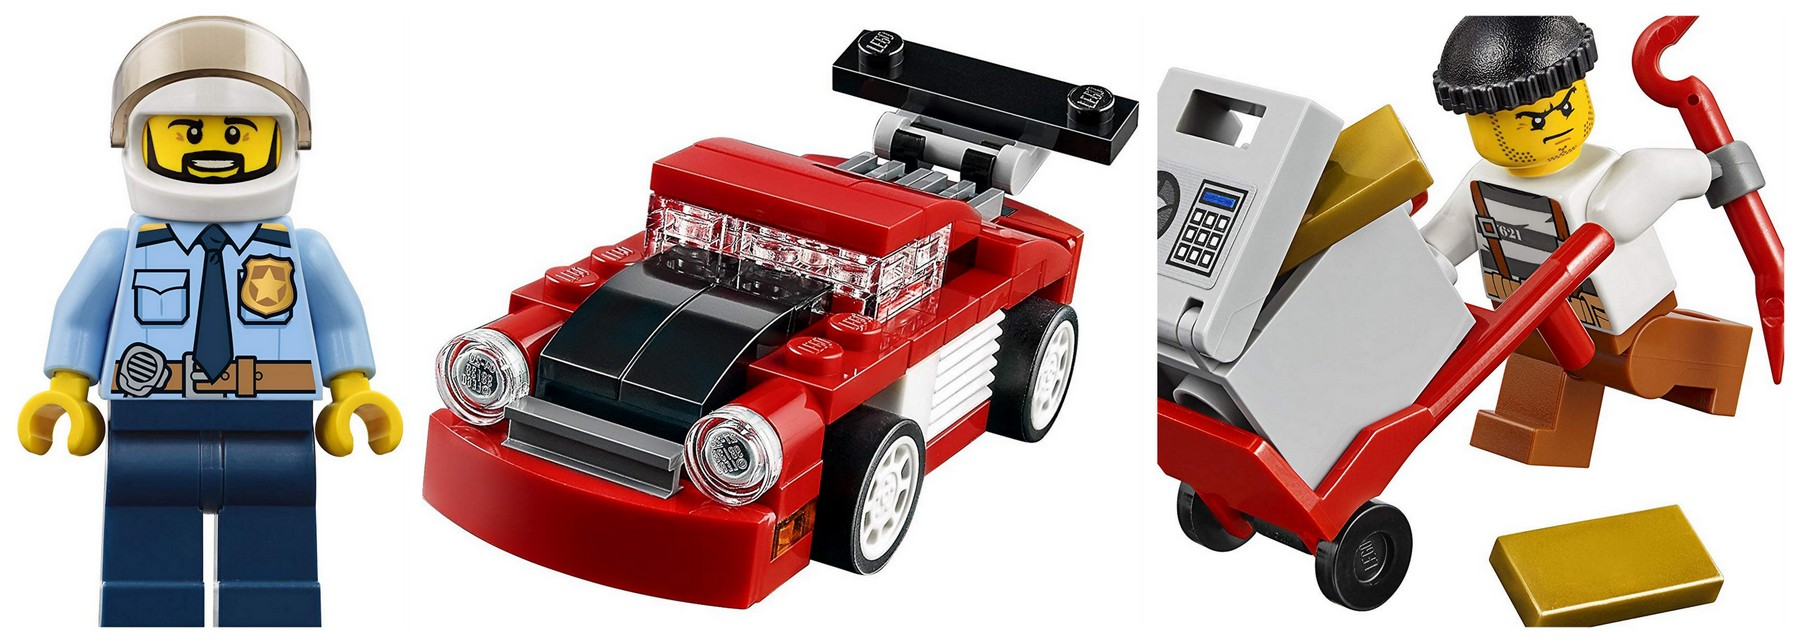 Miscellaneous lego gifts for lego lovers 1